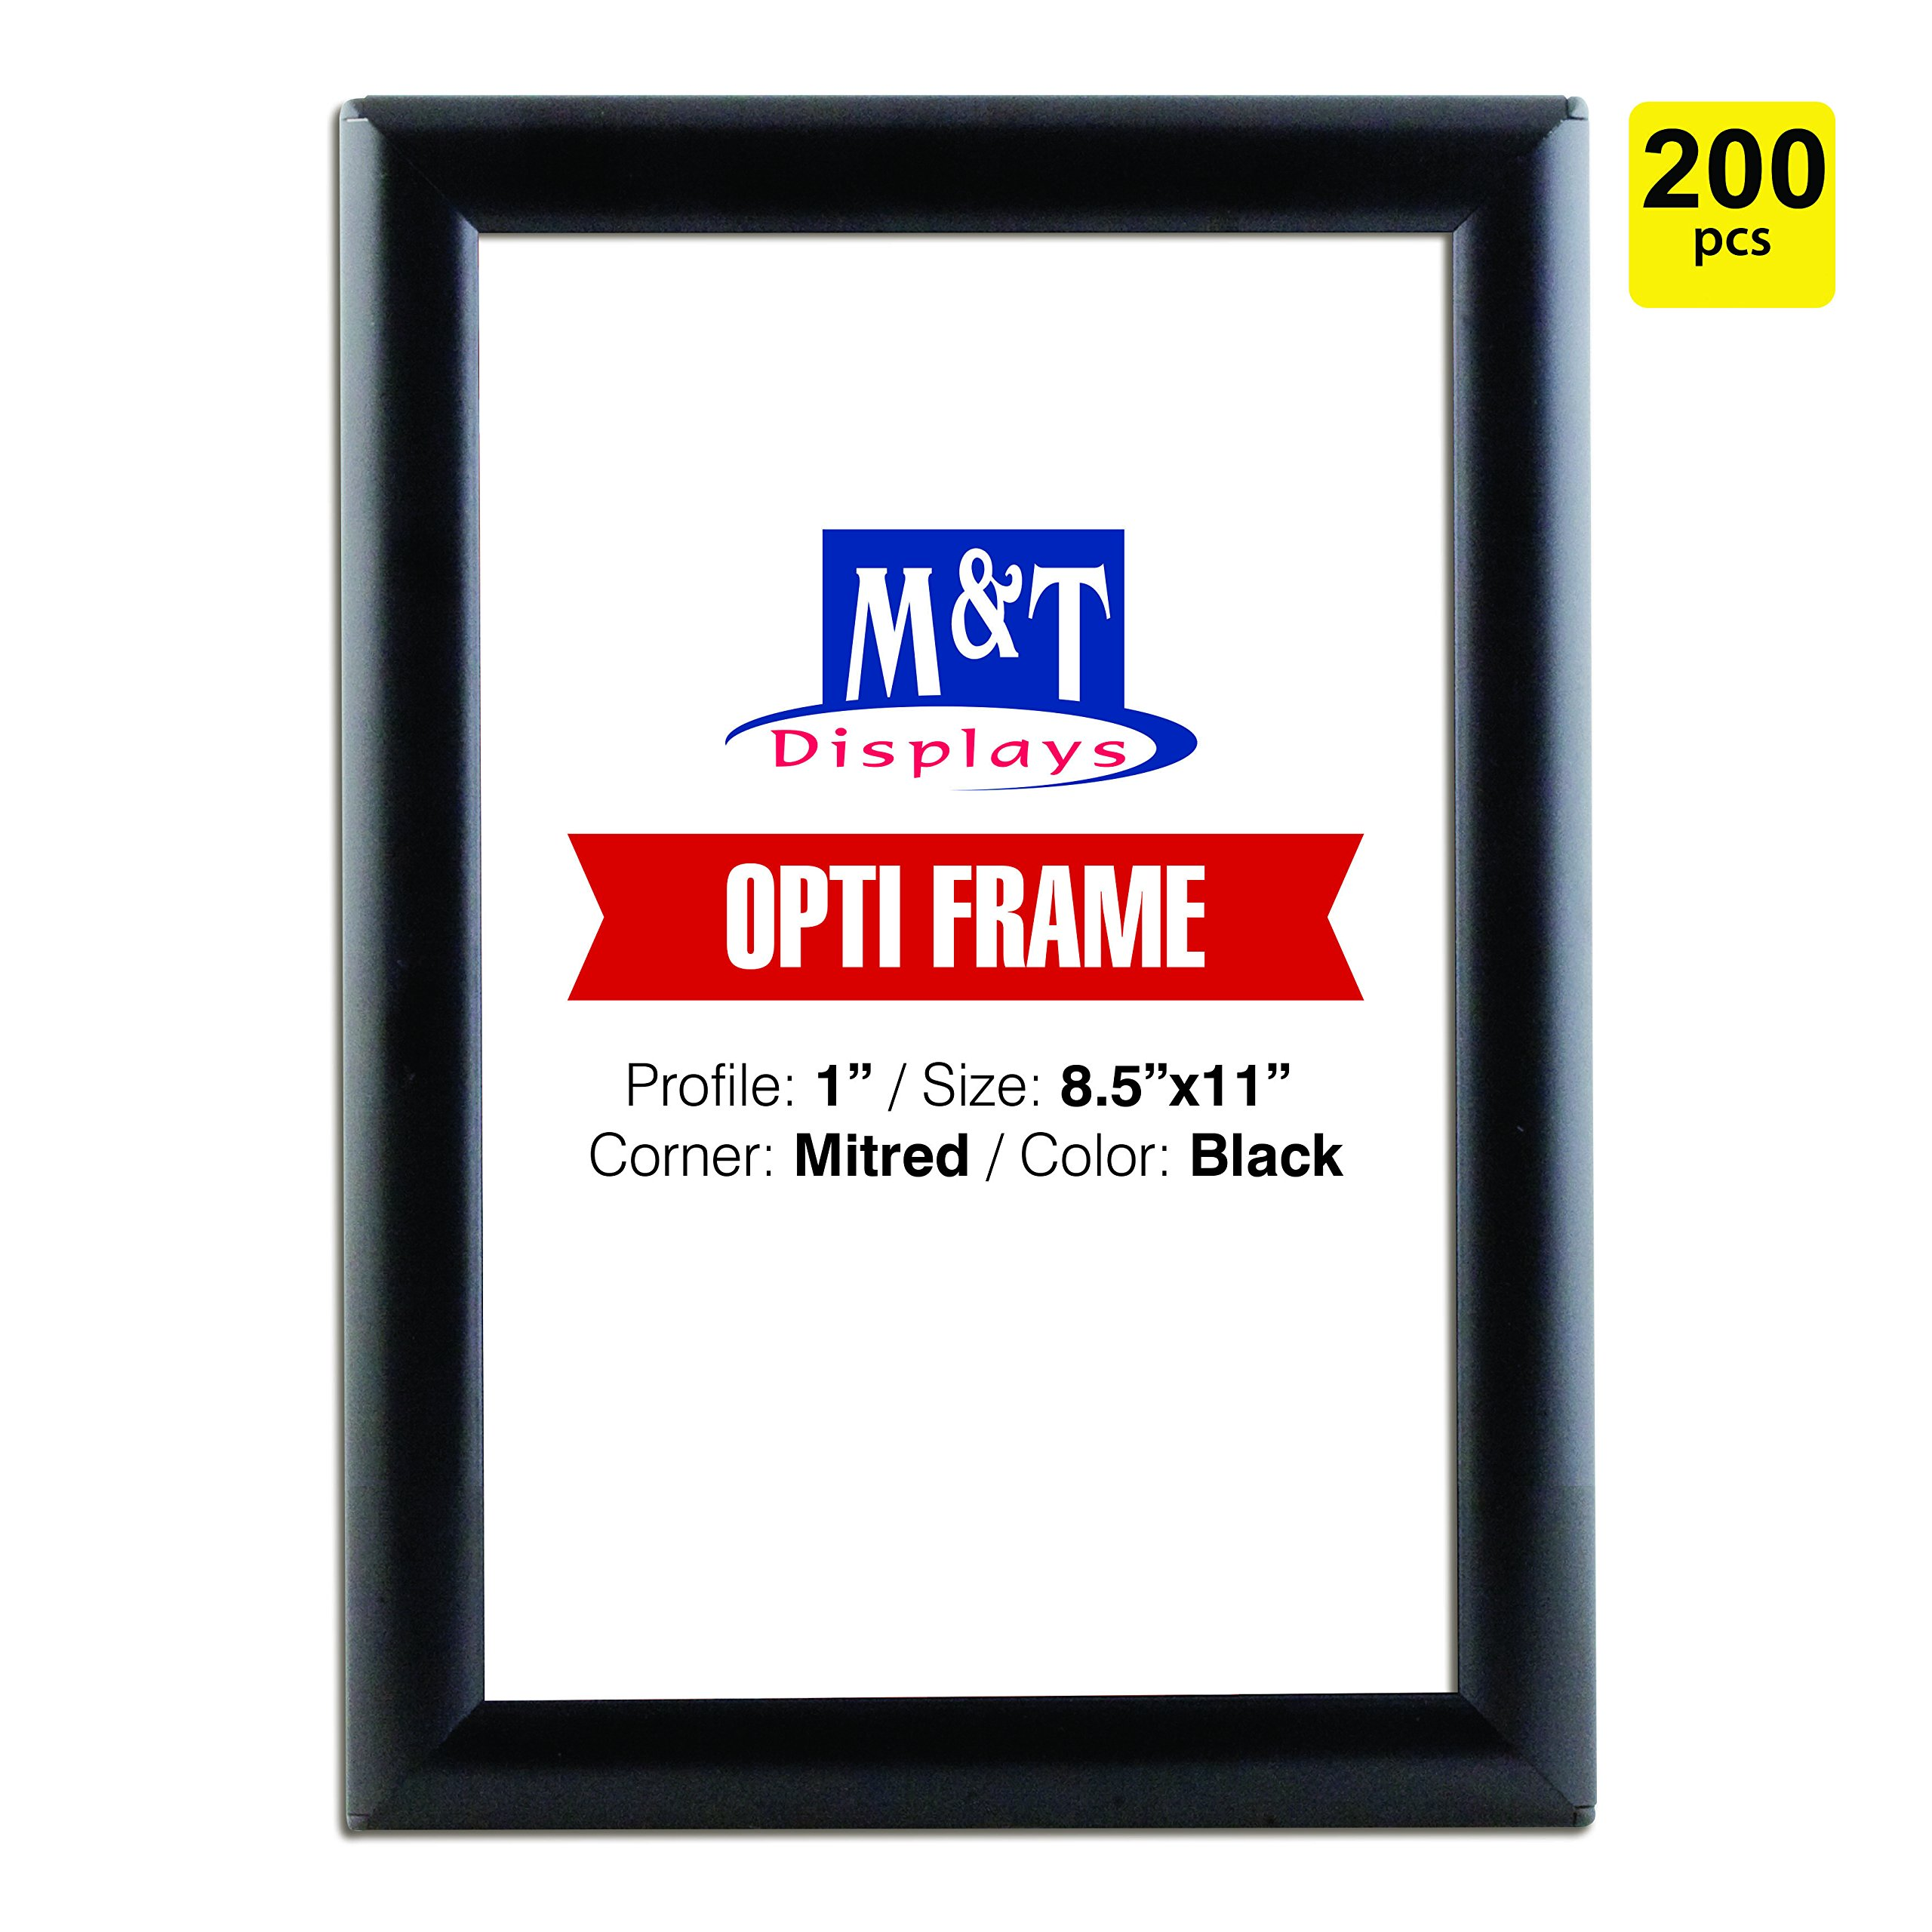 DisplaysMarket 8.5x11  Snap Frame for Wall Mount, Opti Frame, 1 inch Profile-  Black, 200 by M&T Displays (Image #1)